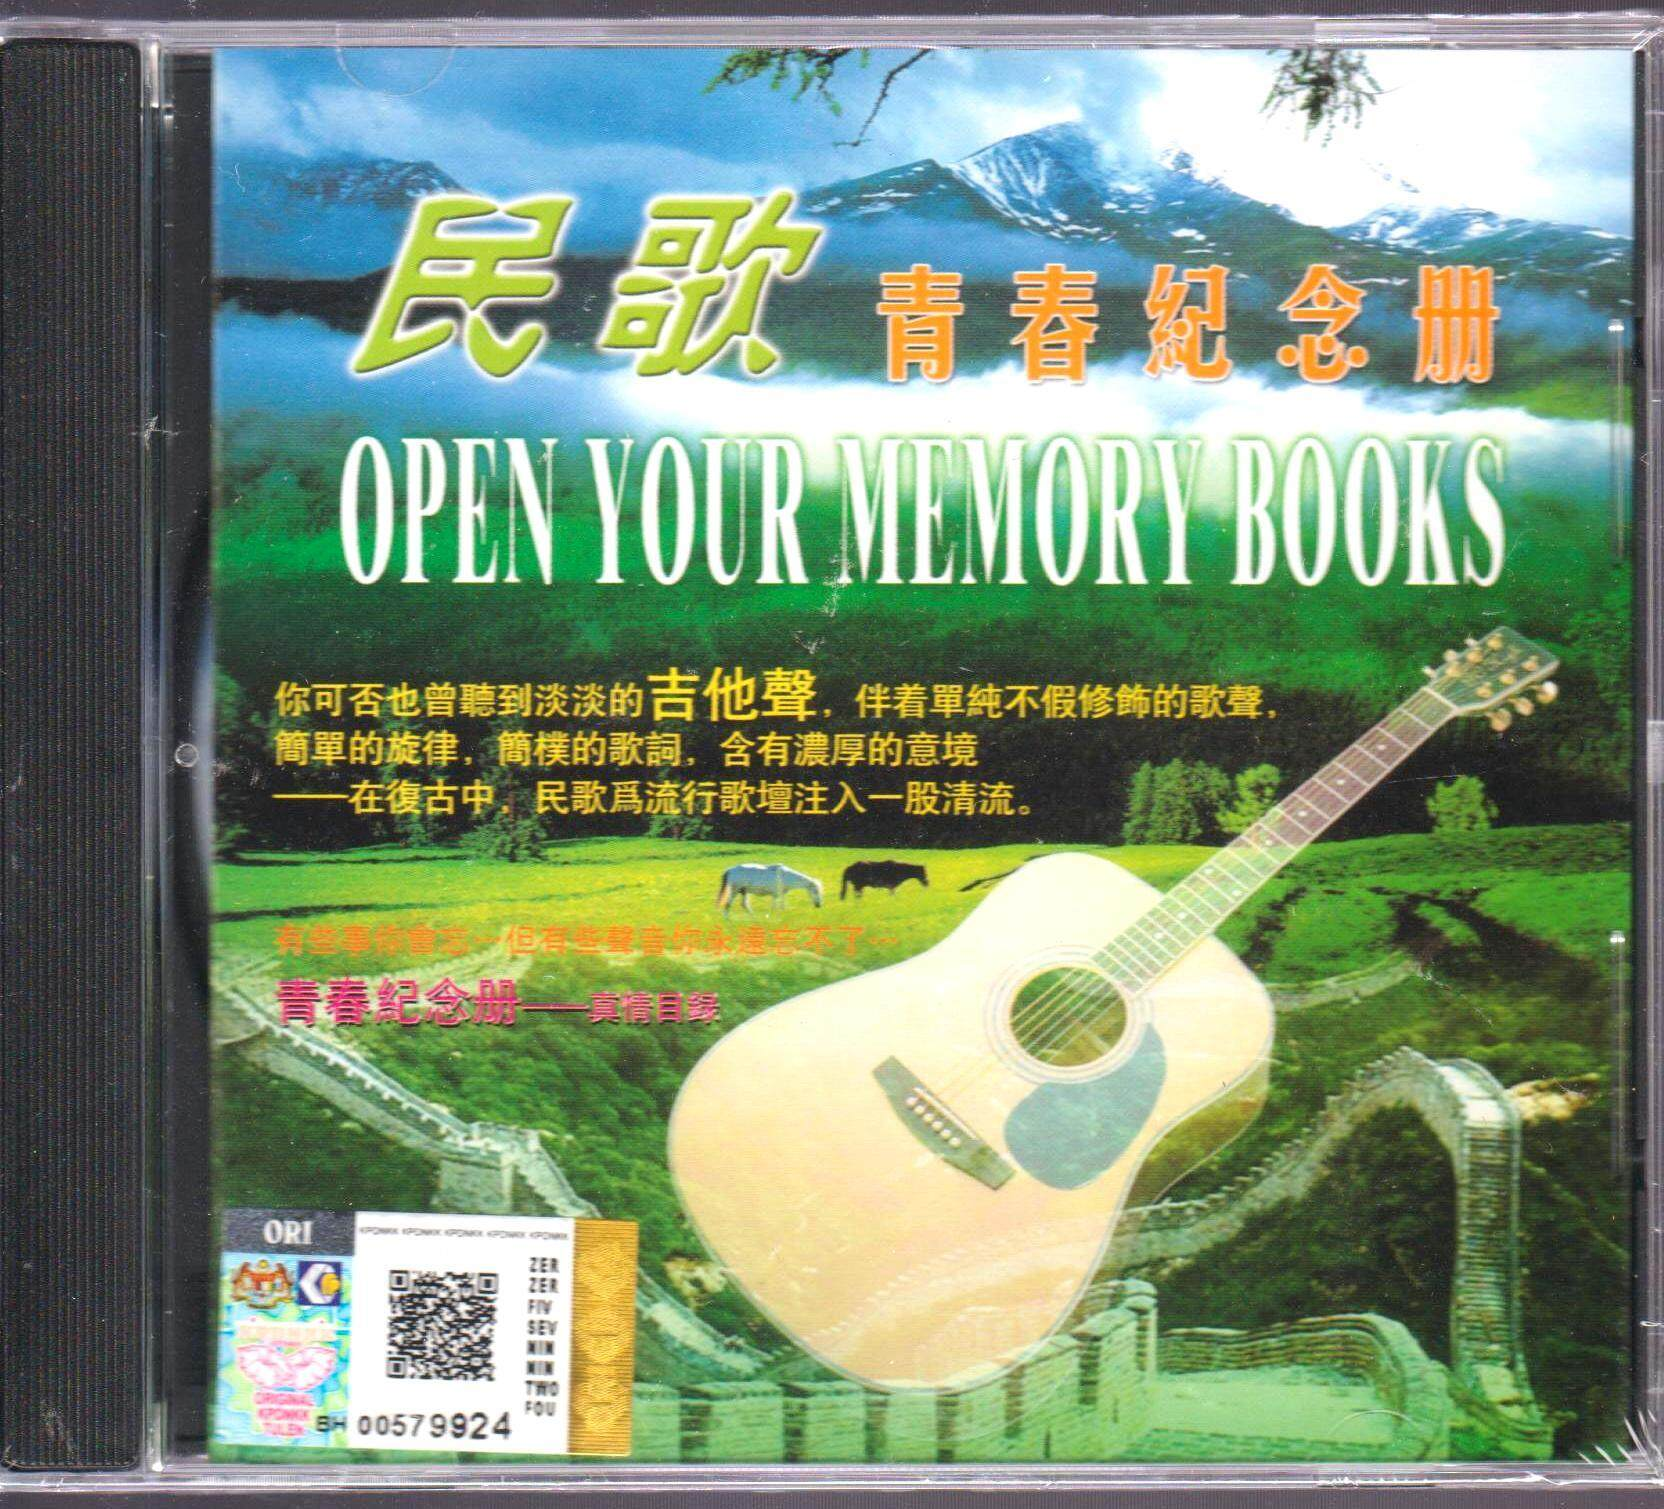 New Cd Open Your Memory Books 民歌青春纪念册 By Onekm Animation Shop.